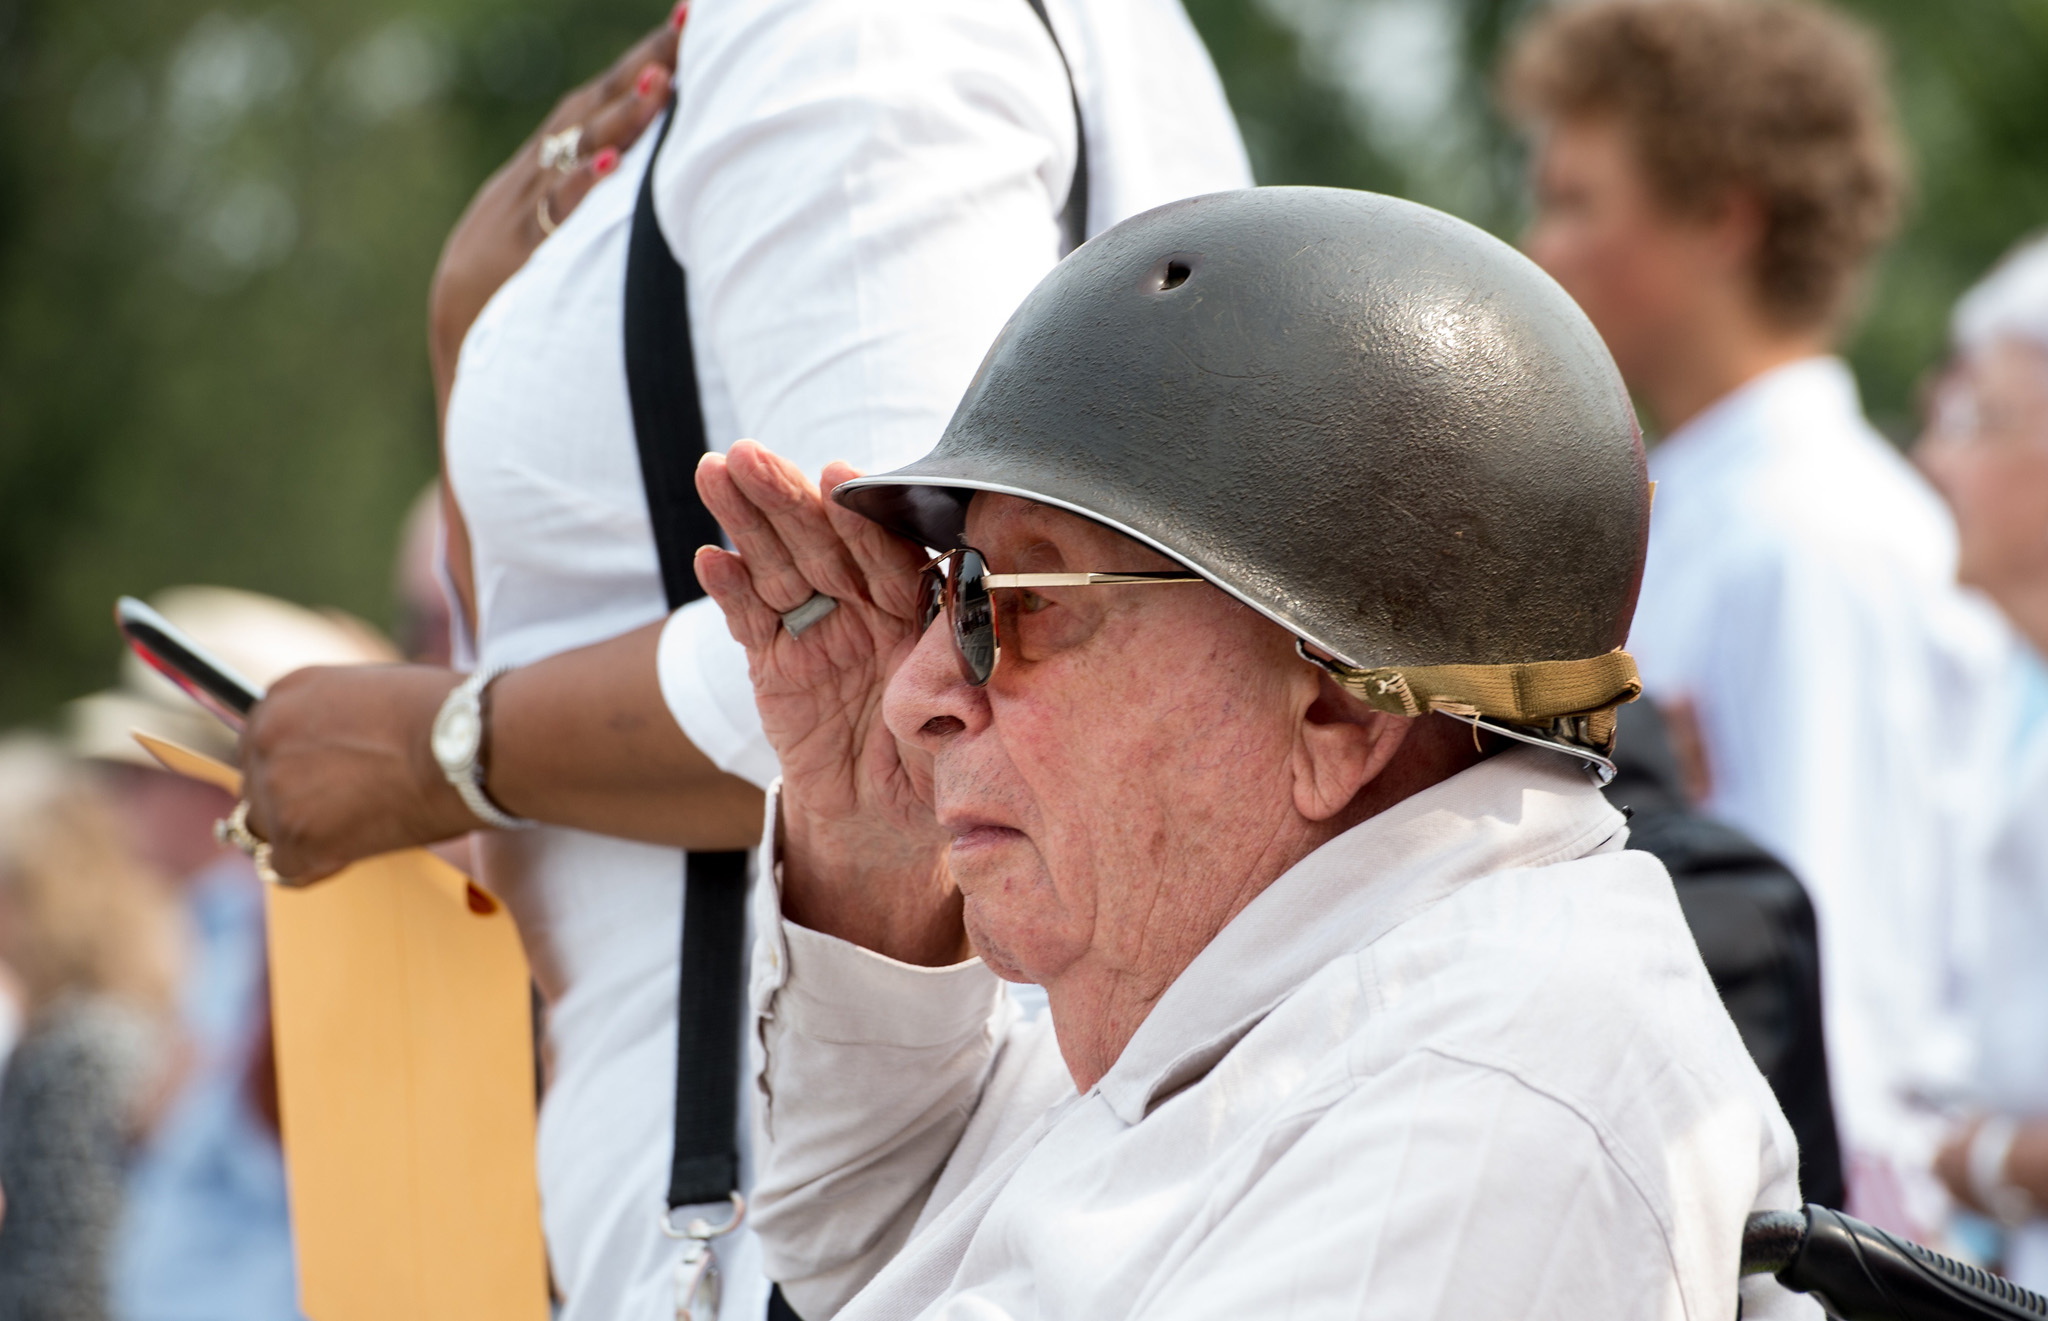 US World War II veteran Howard Troward salutes as the national anthem is played during a ceremony marking the 70th anniversary of the Allied Forces victory over Japan in the Pacific at the World War II Memorial in Washington, DC.